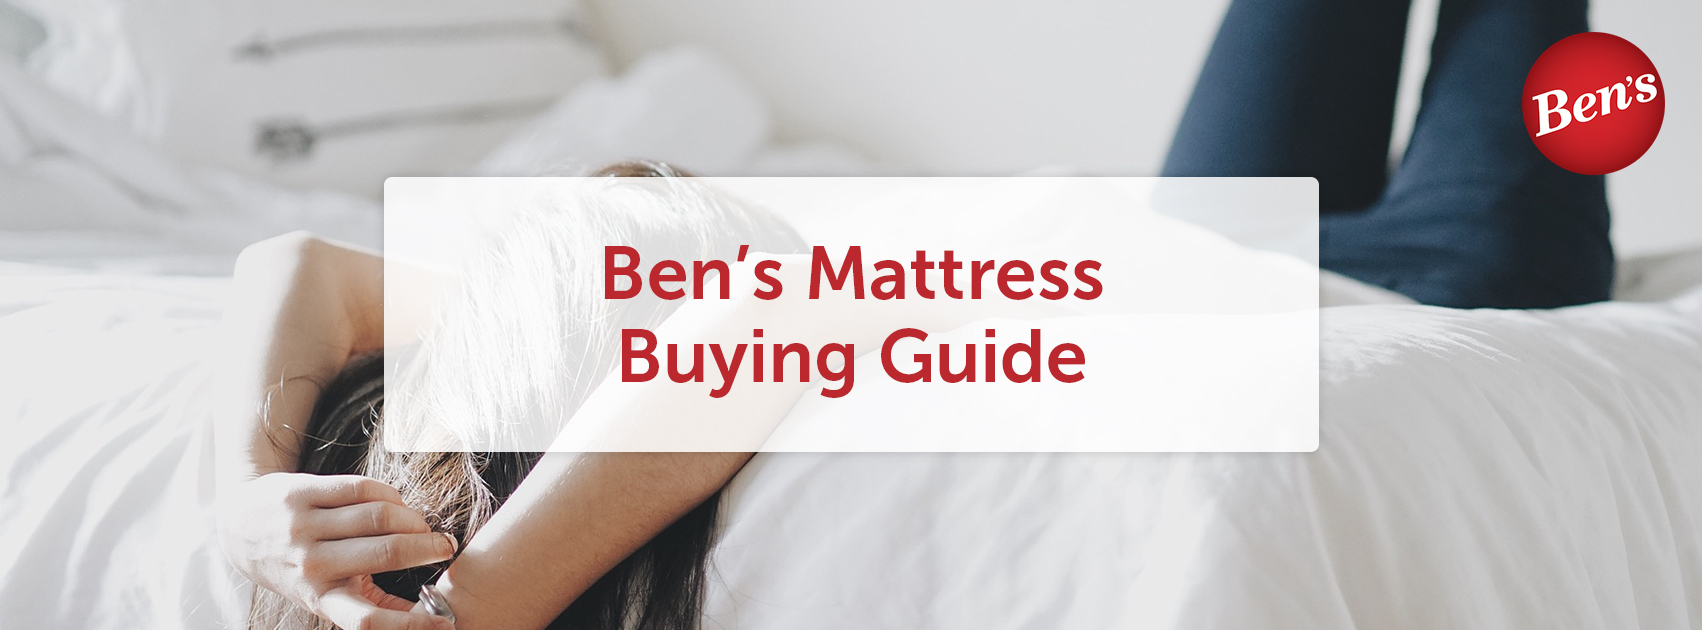 Ben's Mattress Buying Guide